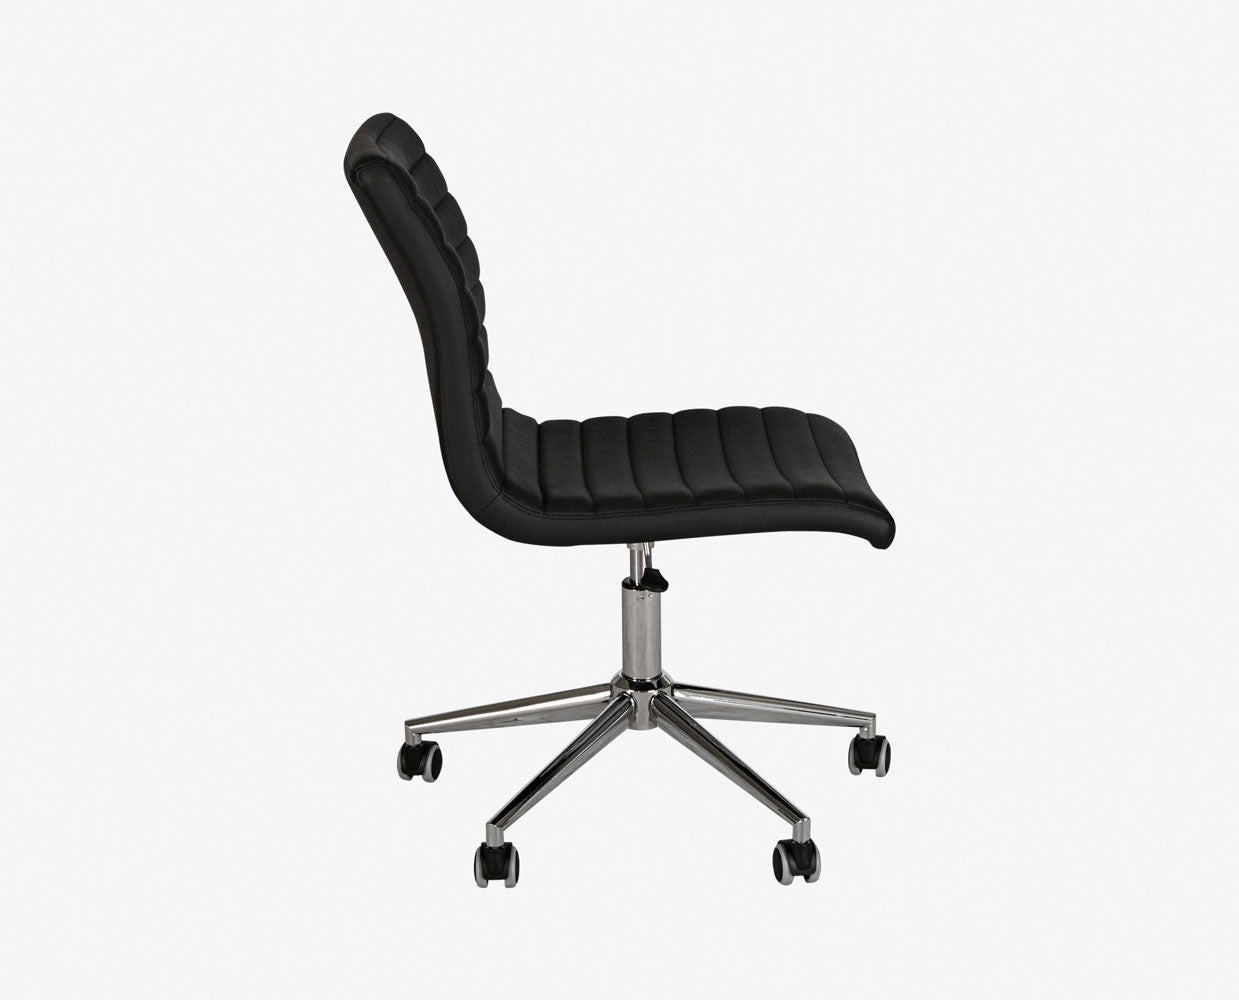 Contemporary sleek leather ergonomic desk chair